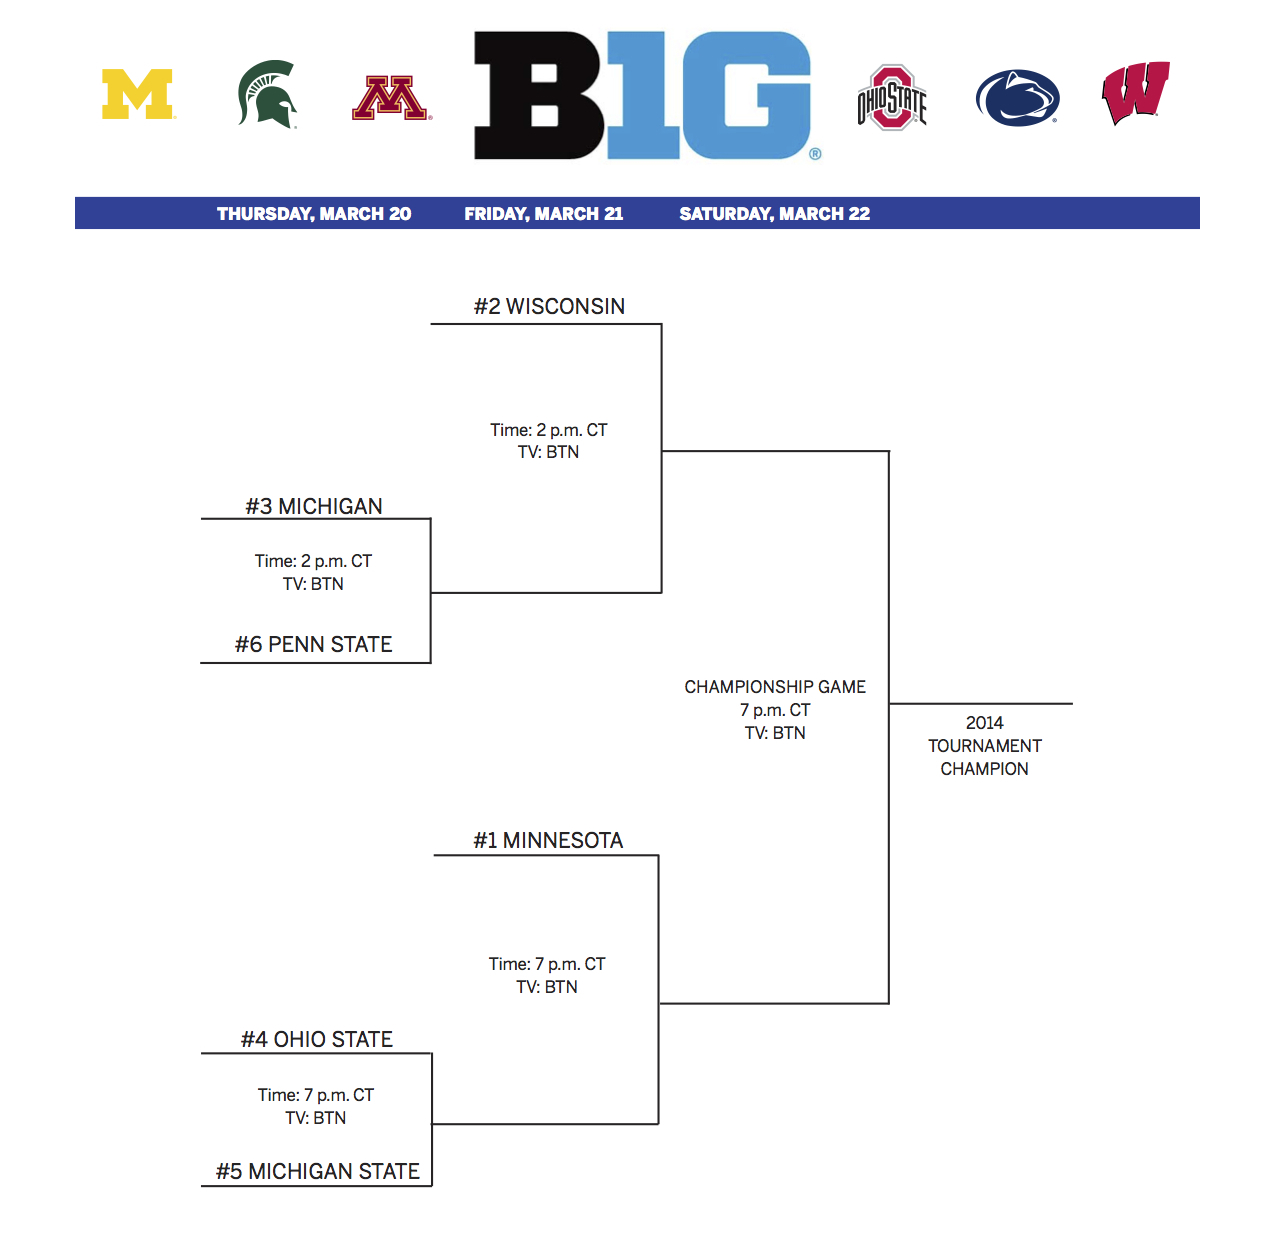 http://cdn3.sbnation.com/assets/4145111/2014_B1G_HKY_Tournament_Bracket.jpg